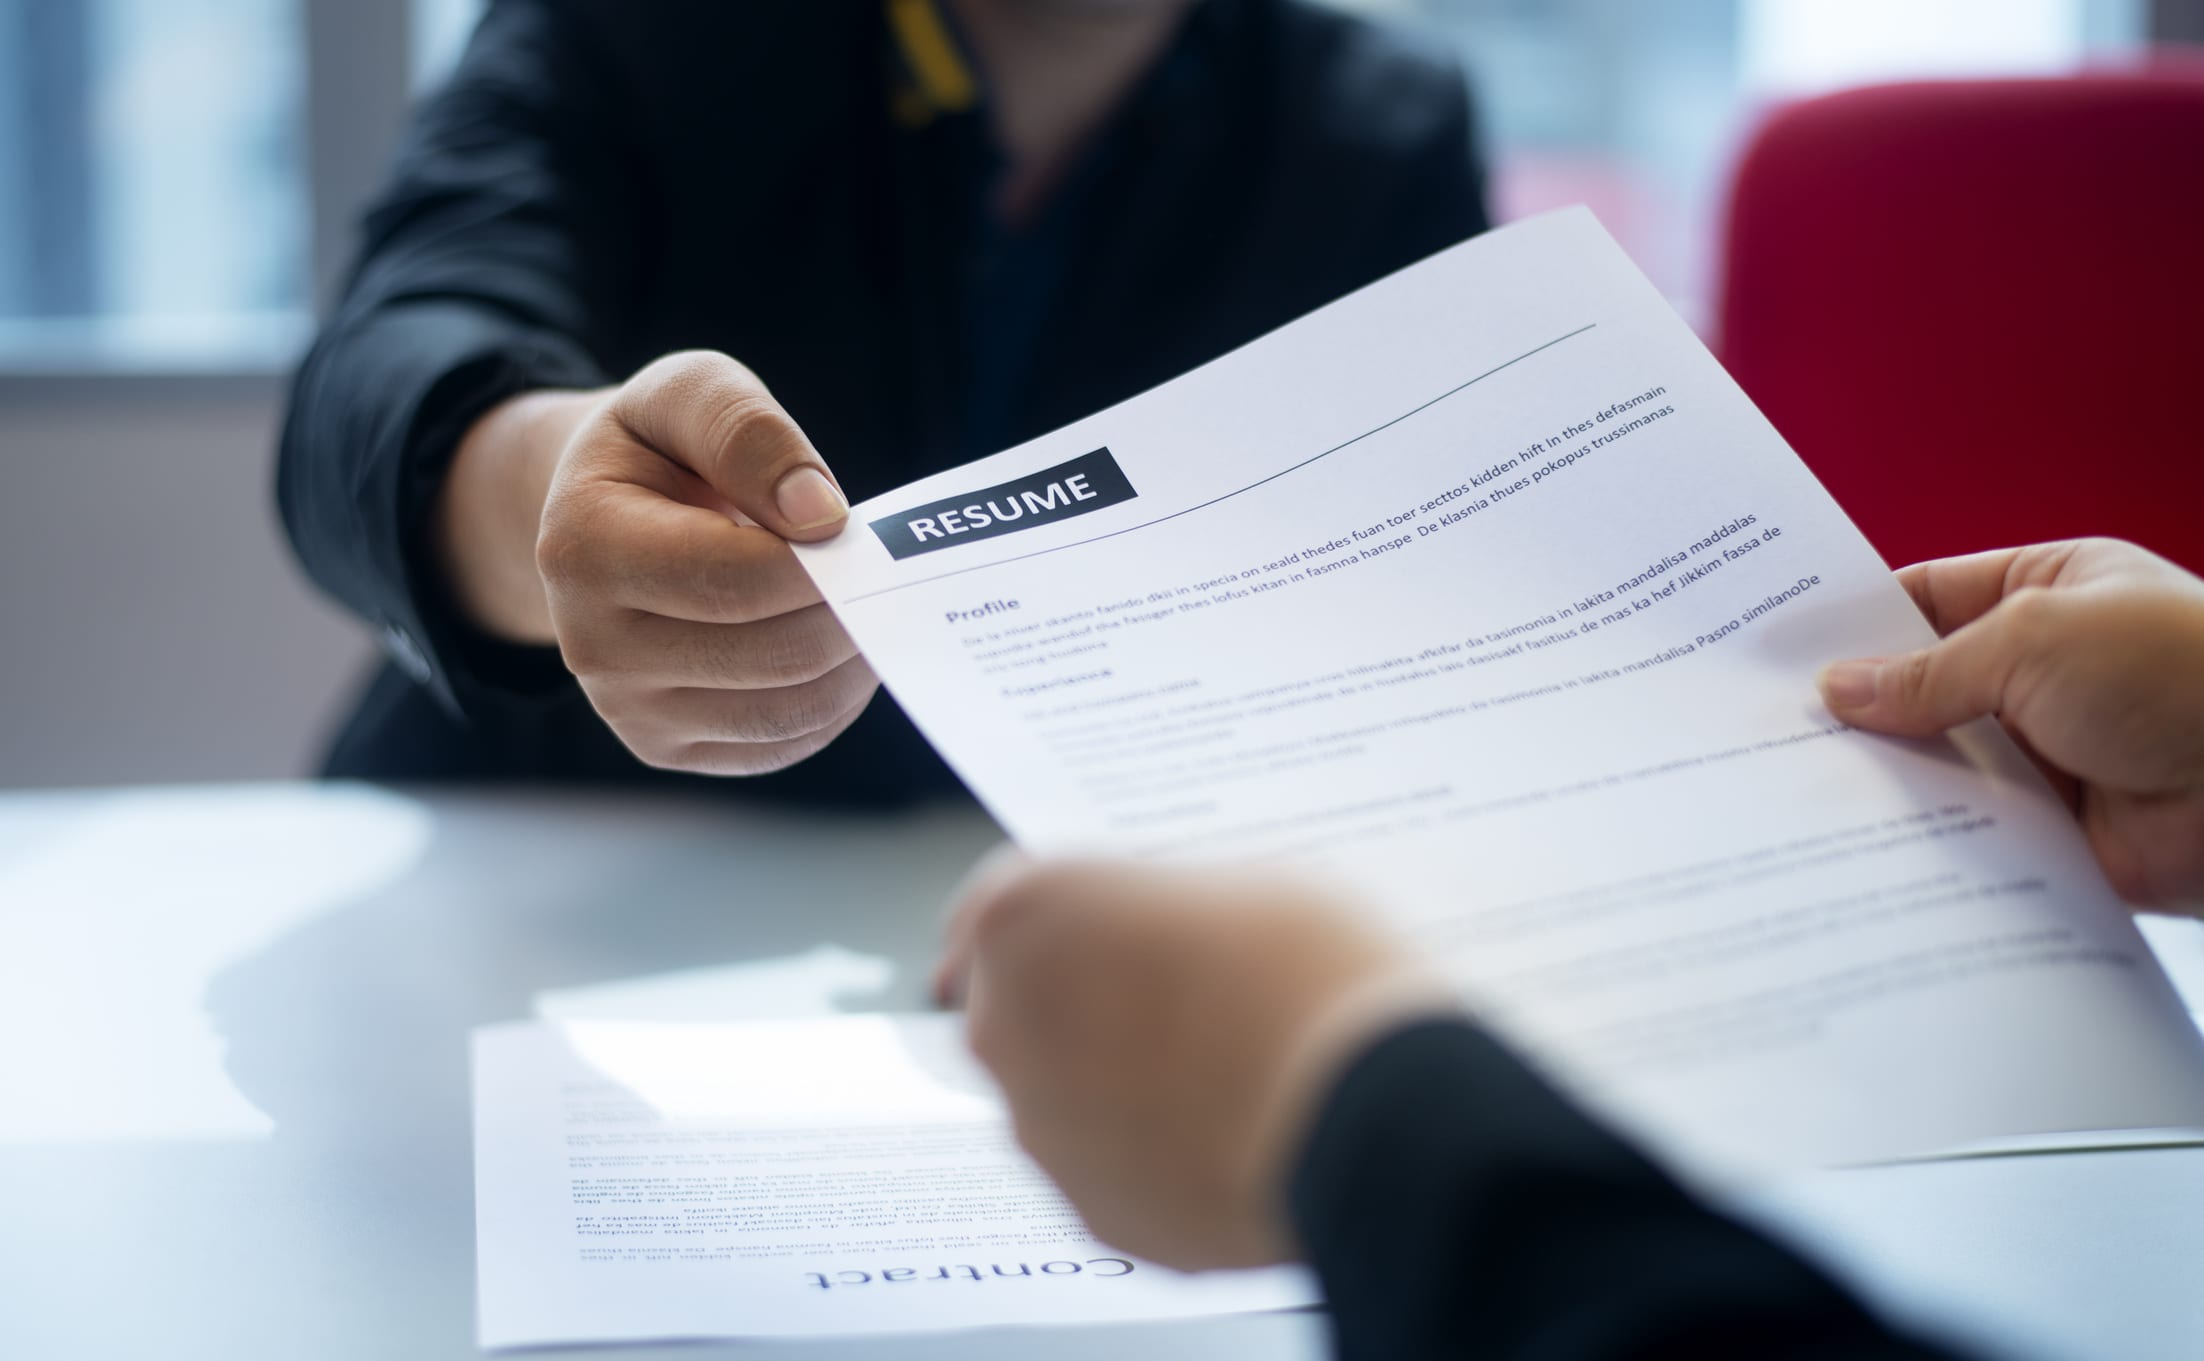 The Old-Fashioned Resume May No Longer Be the Tool for Hiring a More Diverse Team